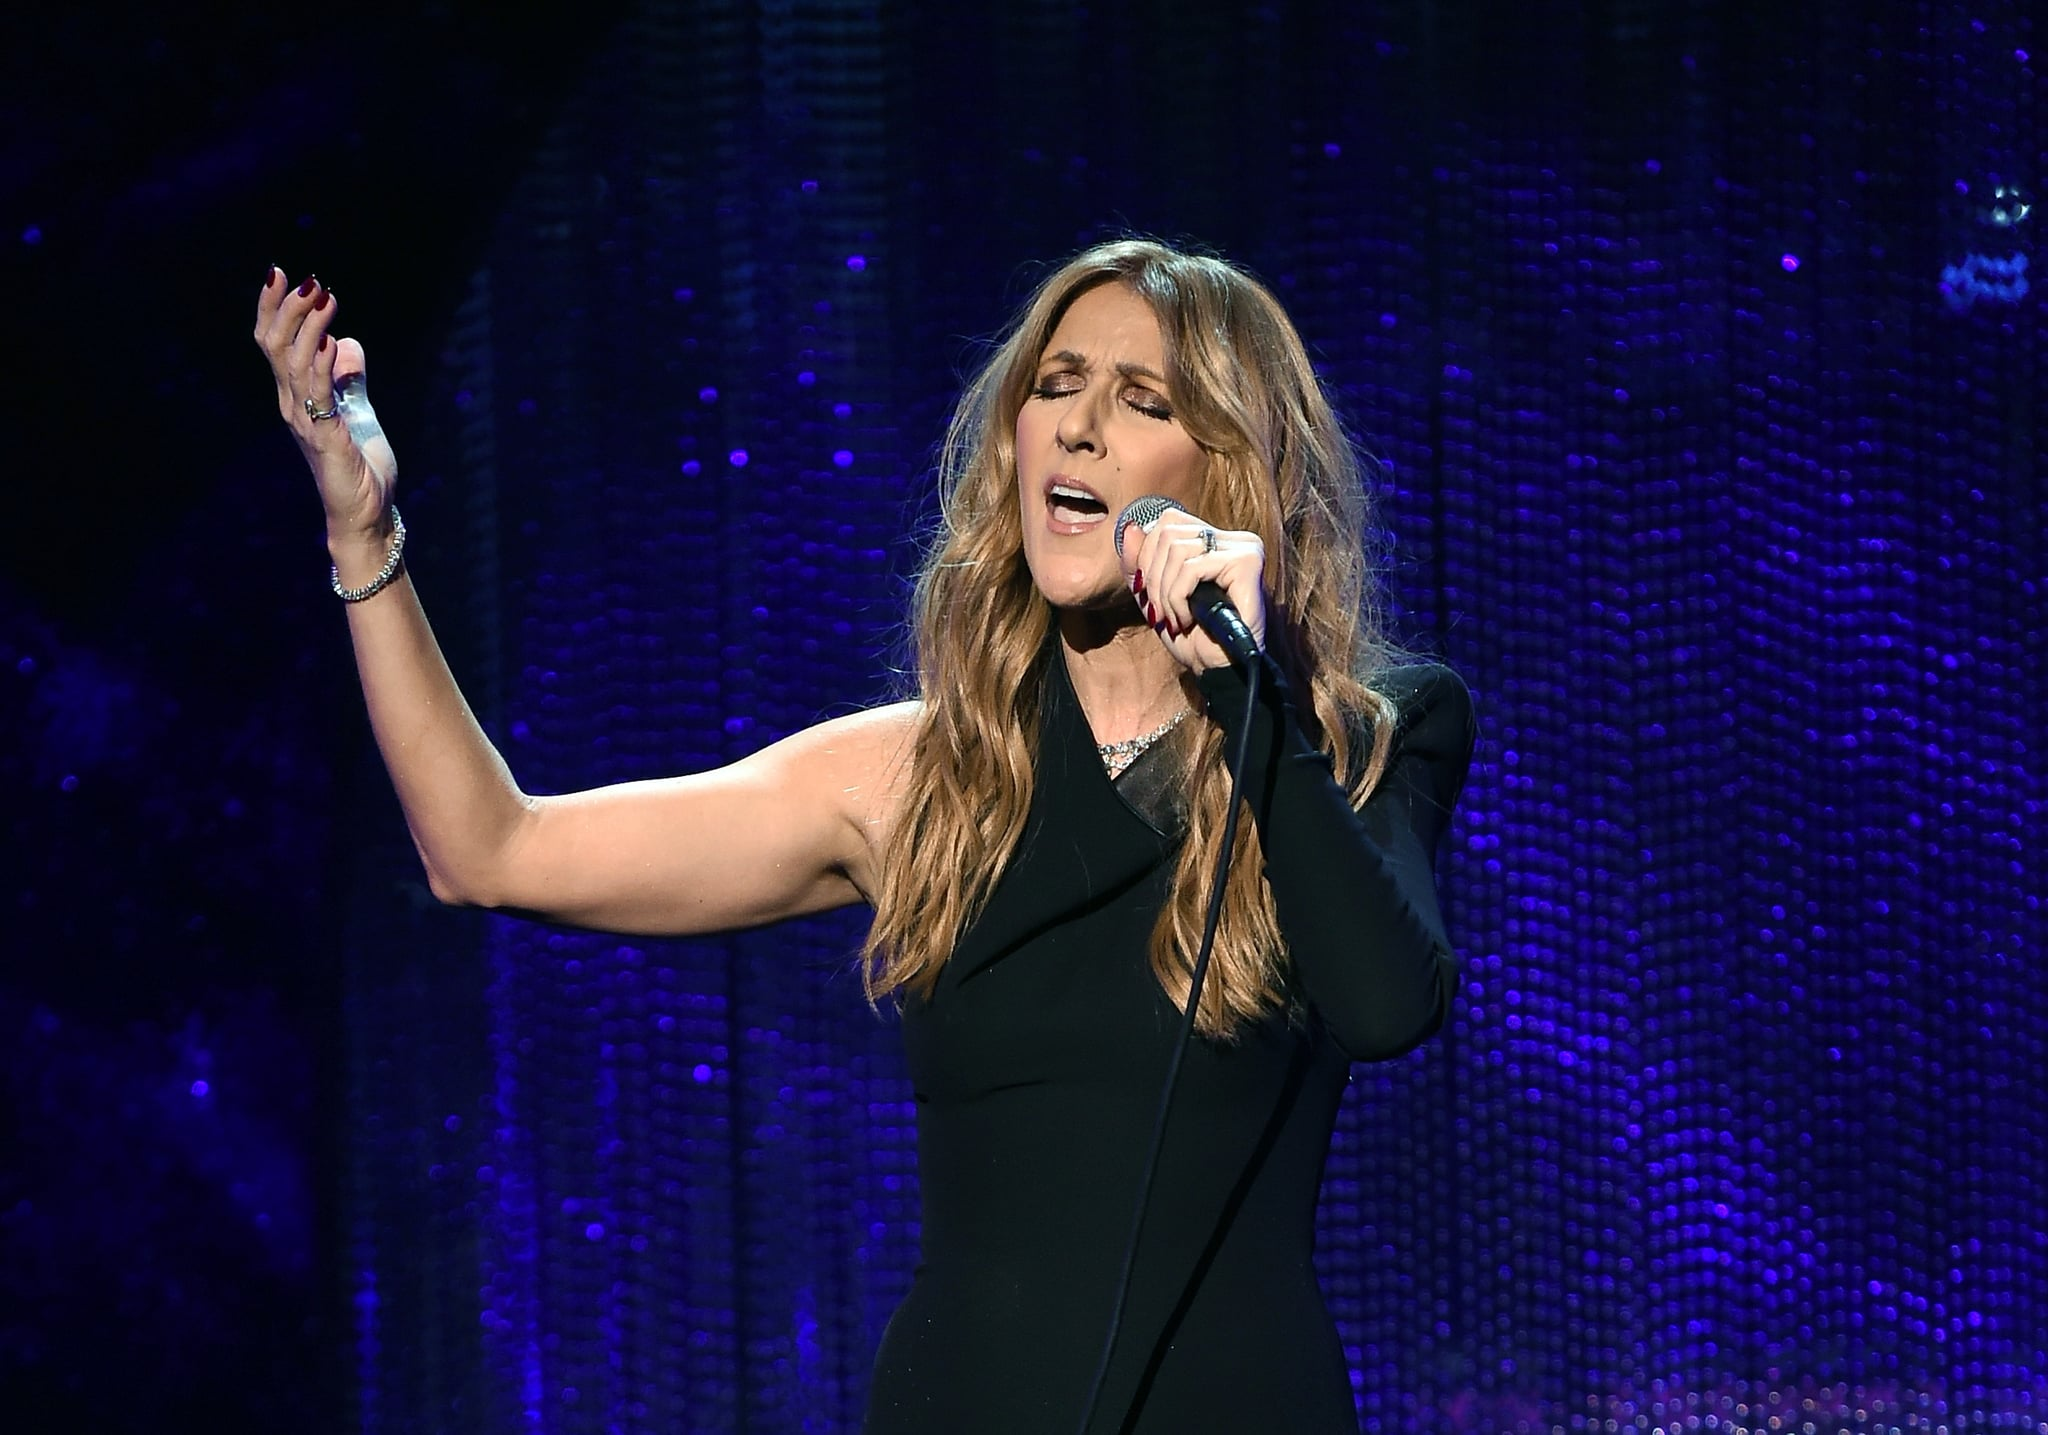 LAS VEGAS, NV - DECEMBER 02:  Singer Celine Dion performs during